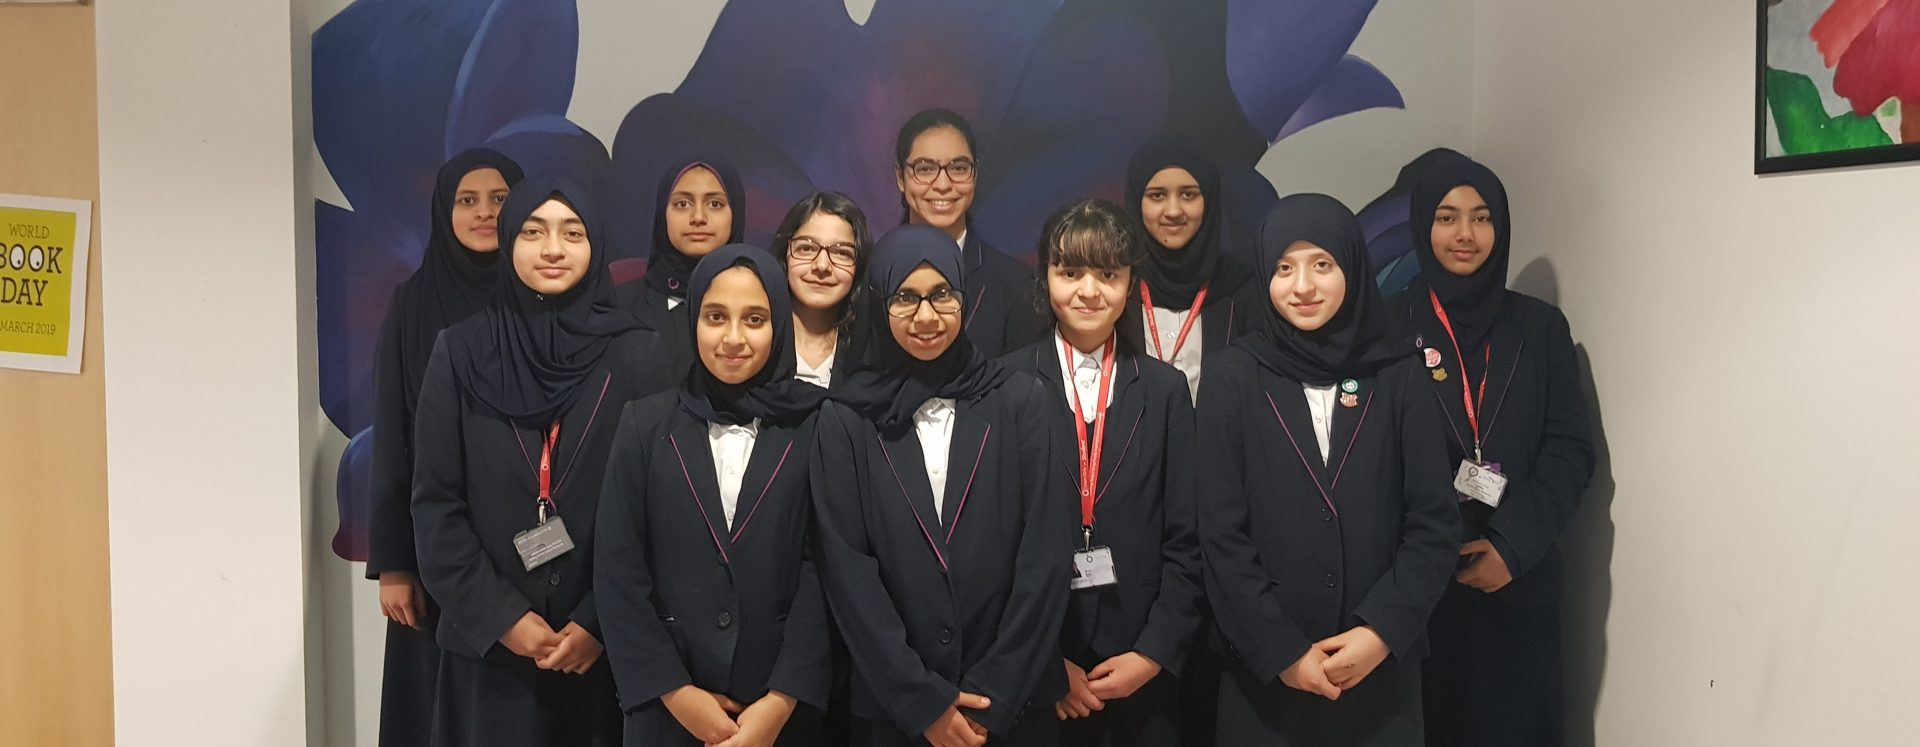 Girls secure top 50 spot in national cyber security competition